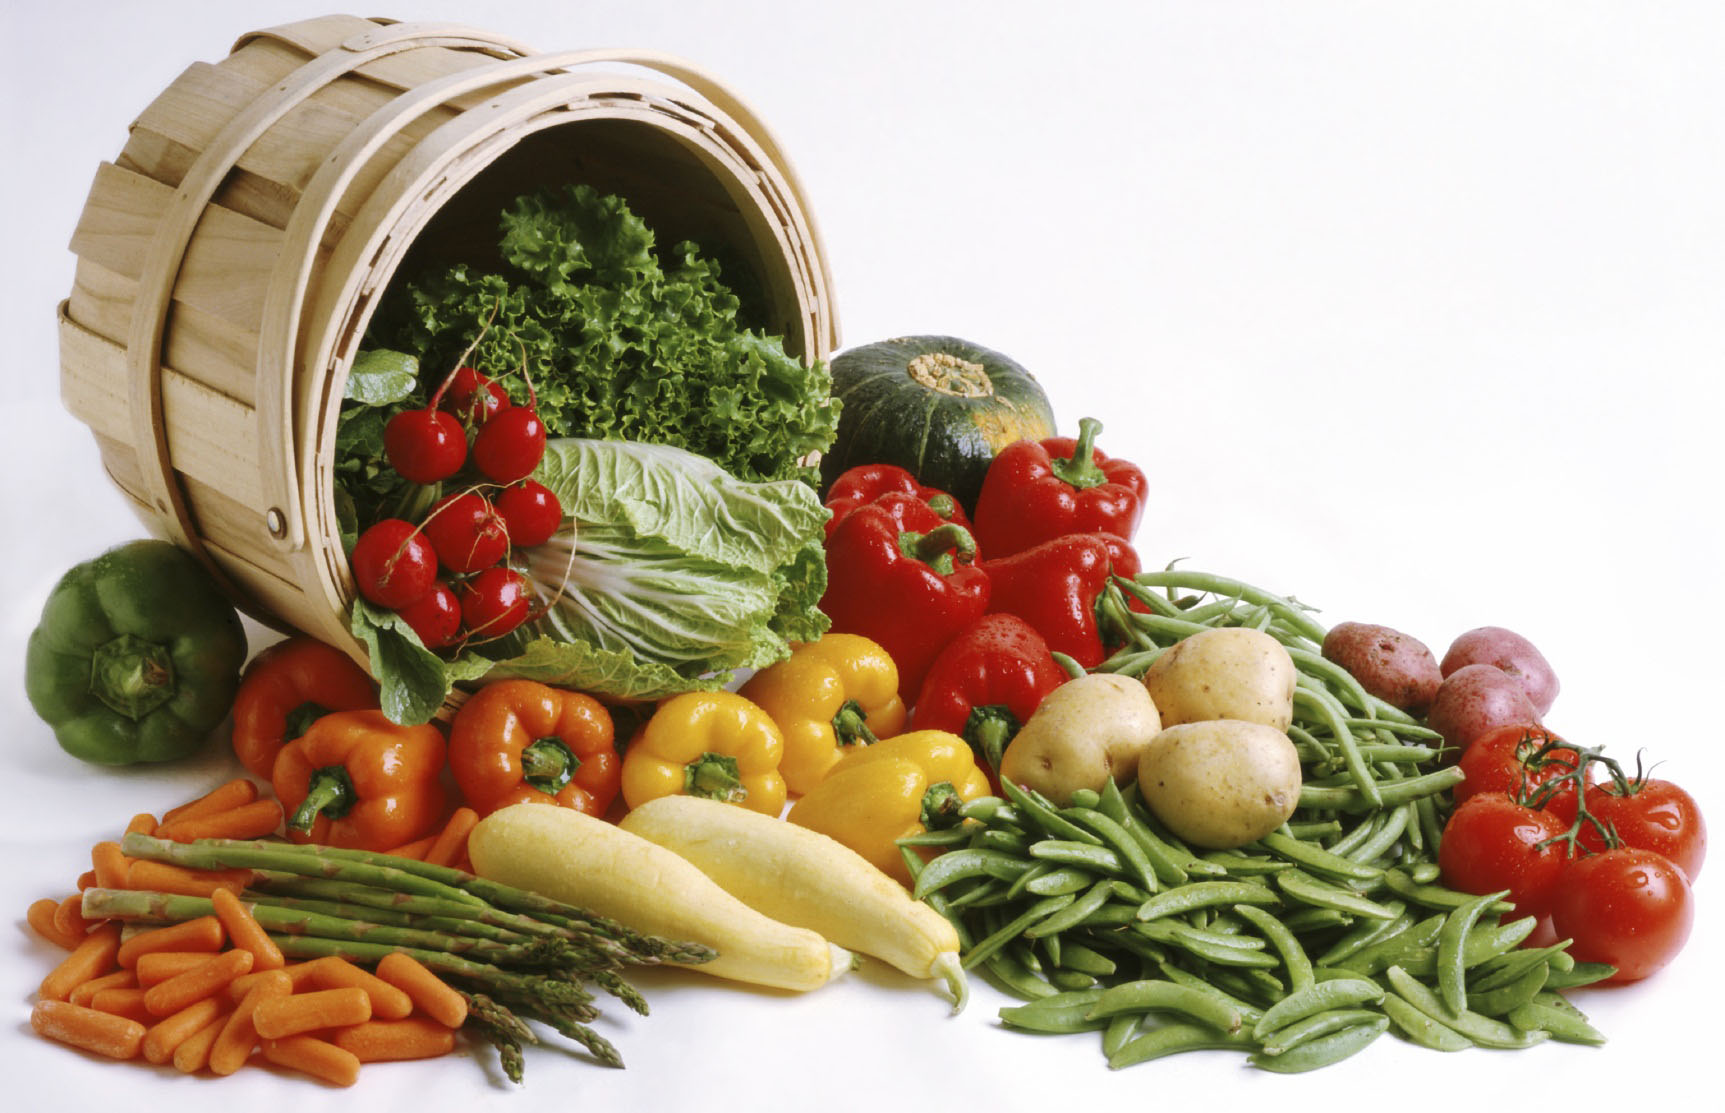 vegetables in wooden basket